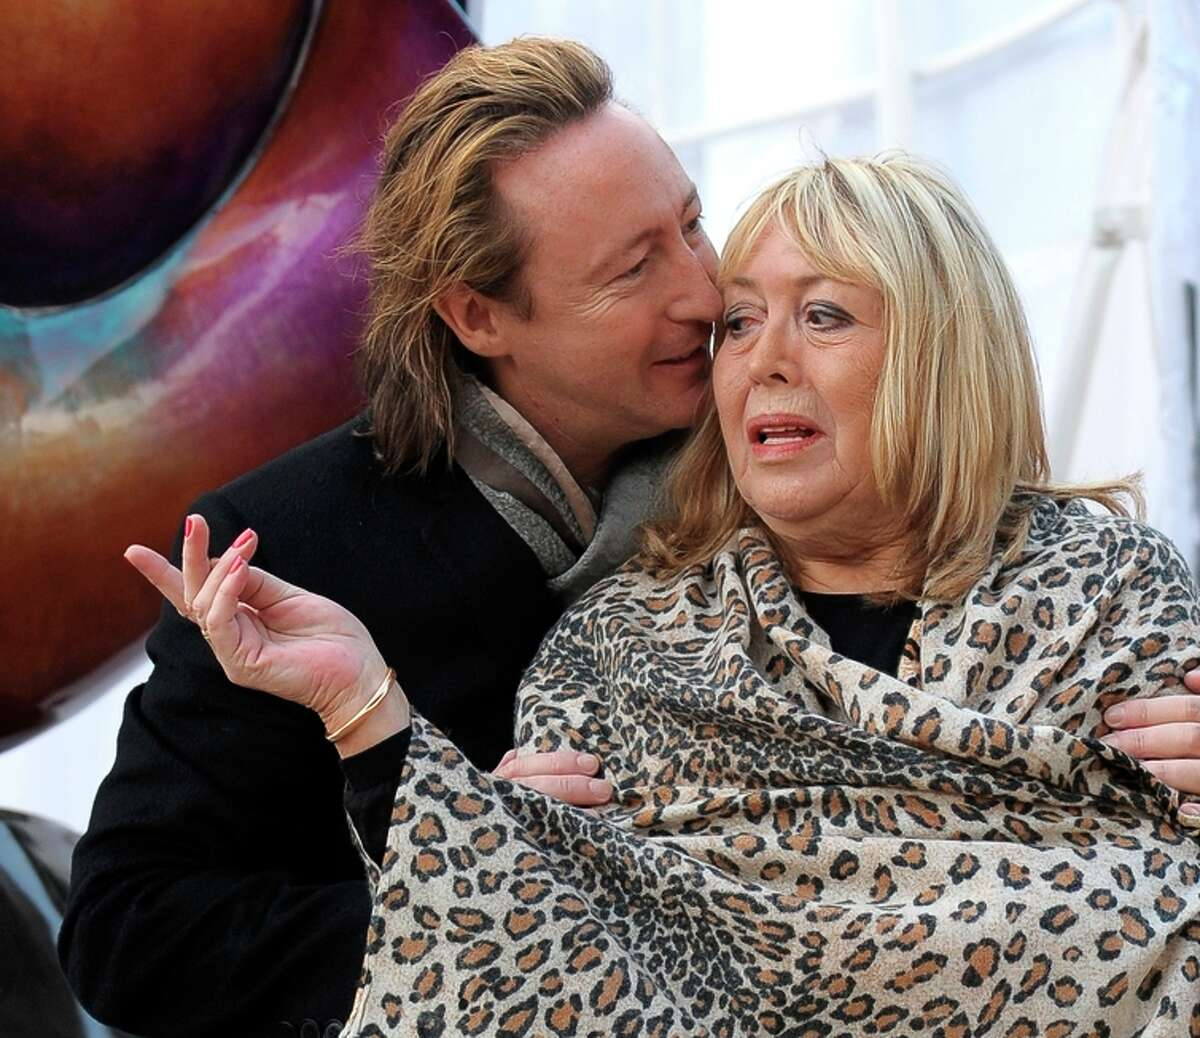 Cynthia Lennon and son, Julian, attend the 2010 unveiling of a Liverpool monument to John Lennon.